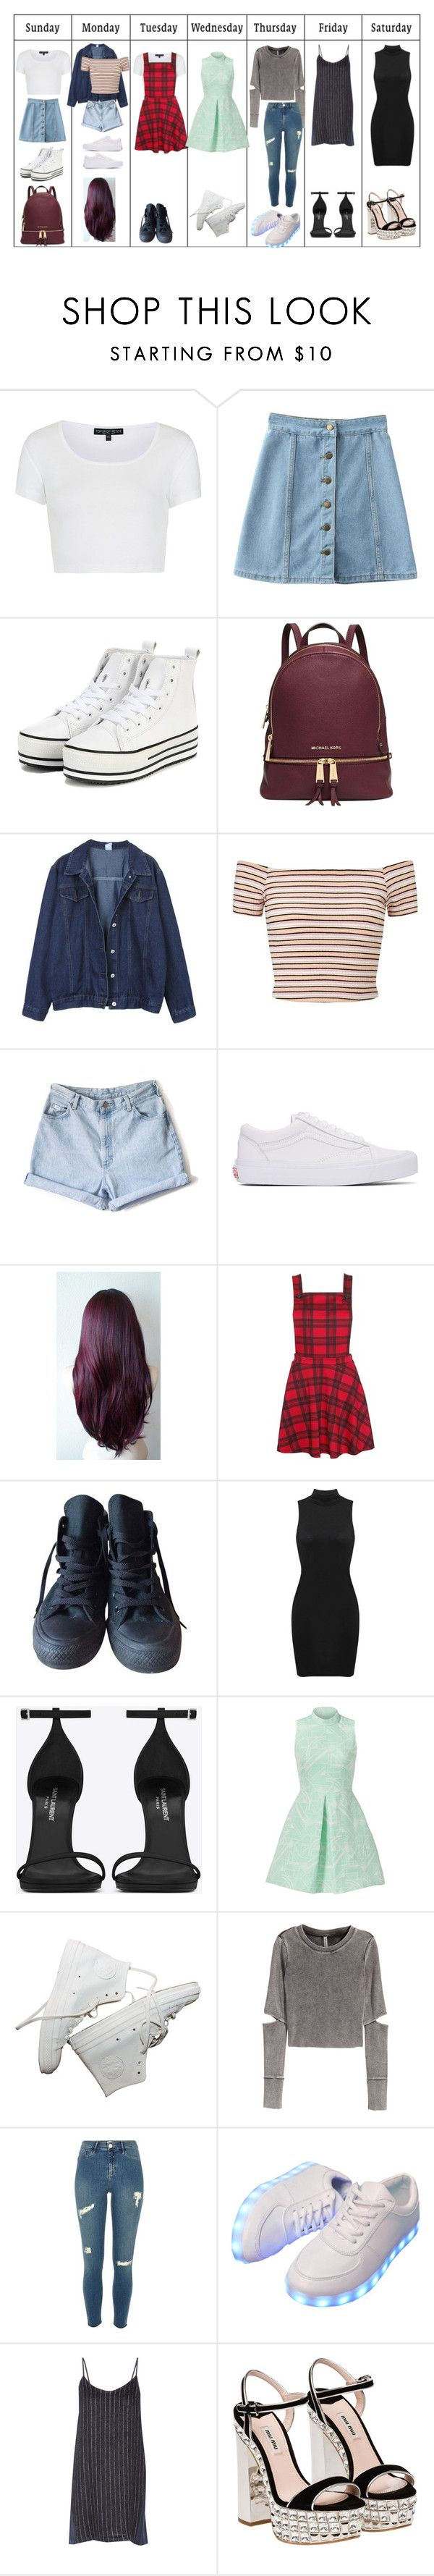 """Untitled #291"" by fangirlkaly8102 ❤ liked on Polyvore featuring Topshop, Michael Kors, Miss Selfridge, Vans, Converse, Yves Saint Laurent, Hunter Bell, H&M, River Island and Sea, New York"